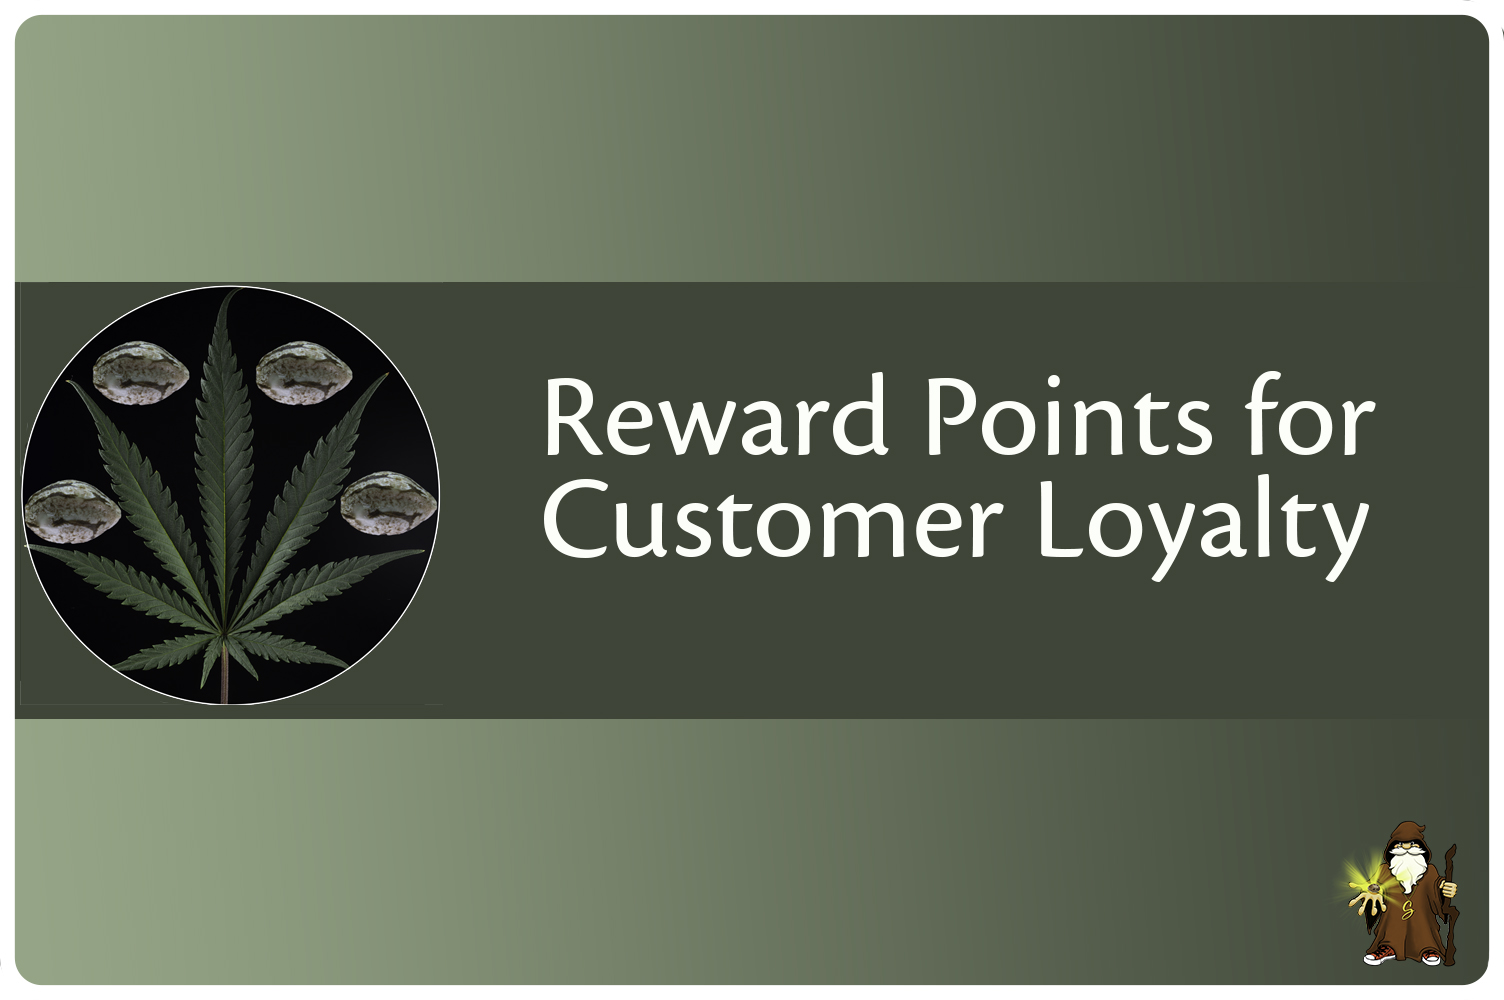 Reward points to earn with every product